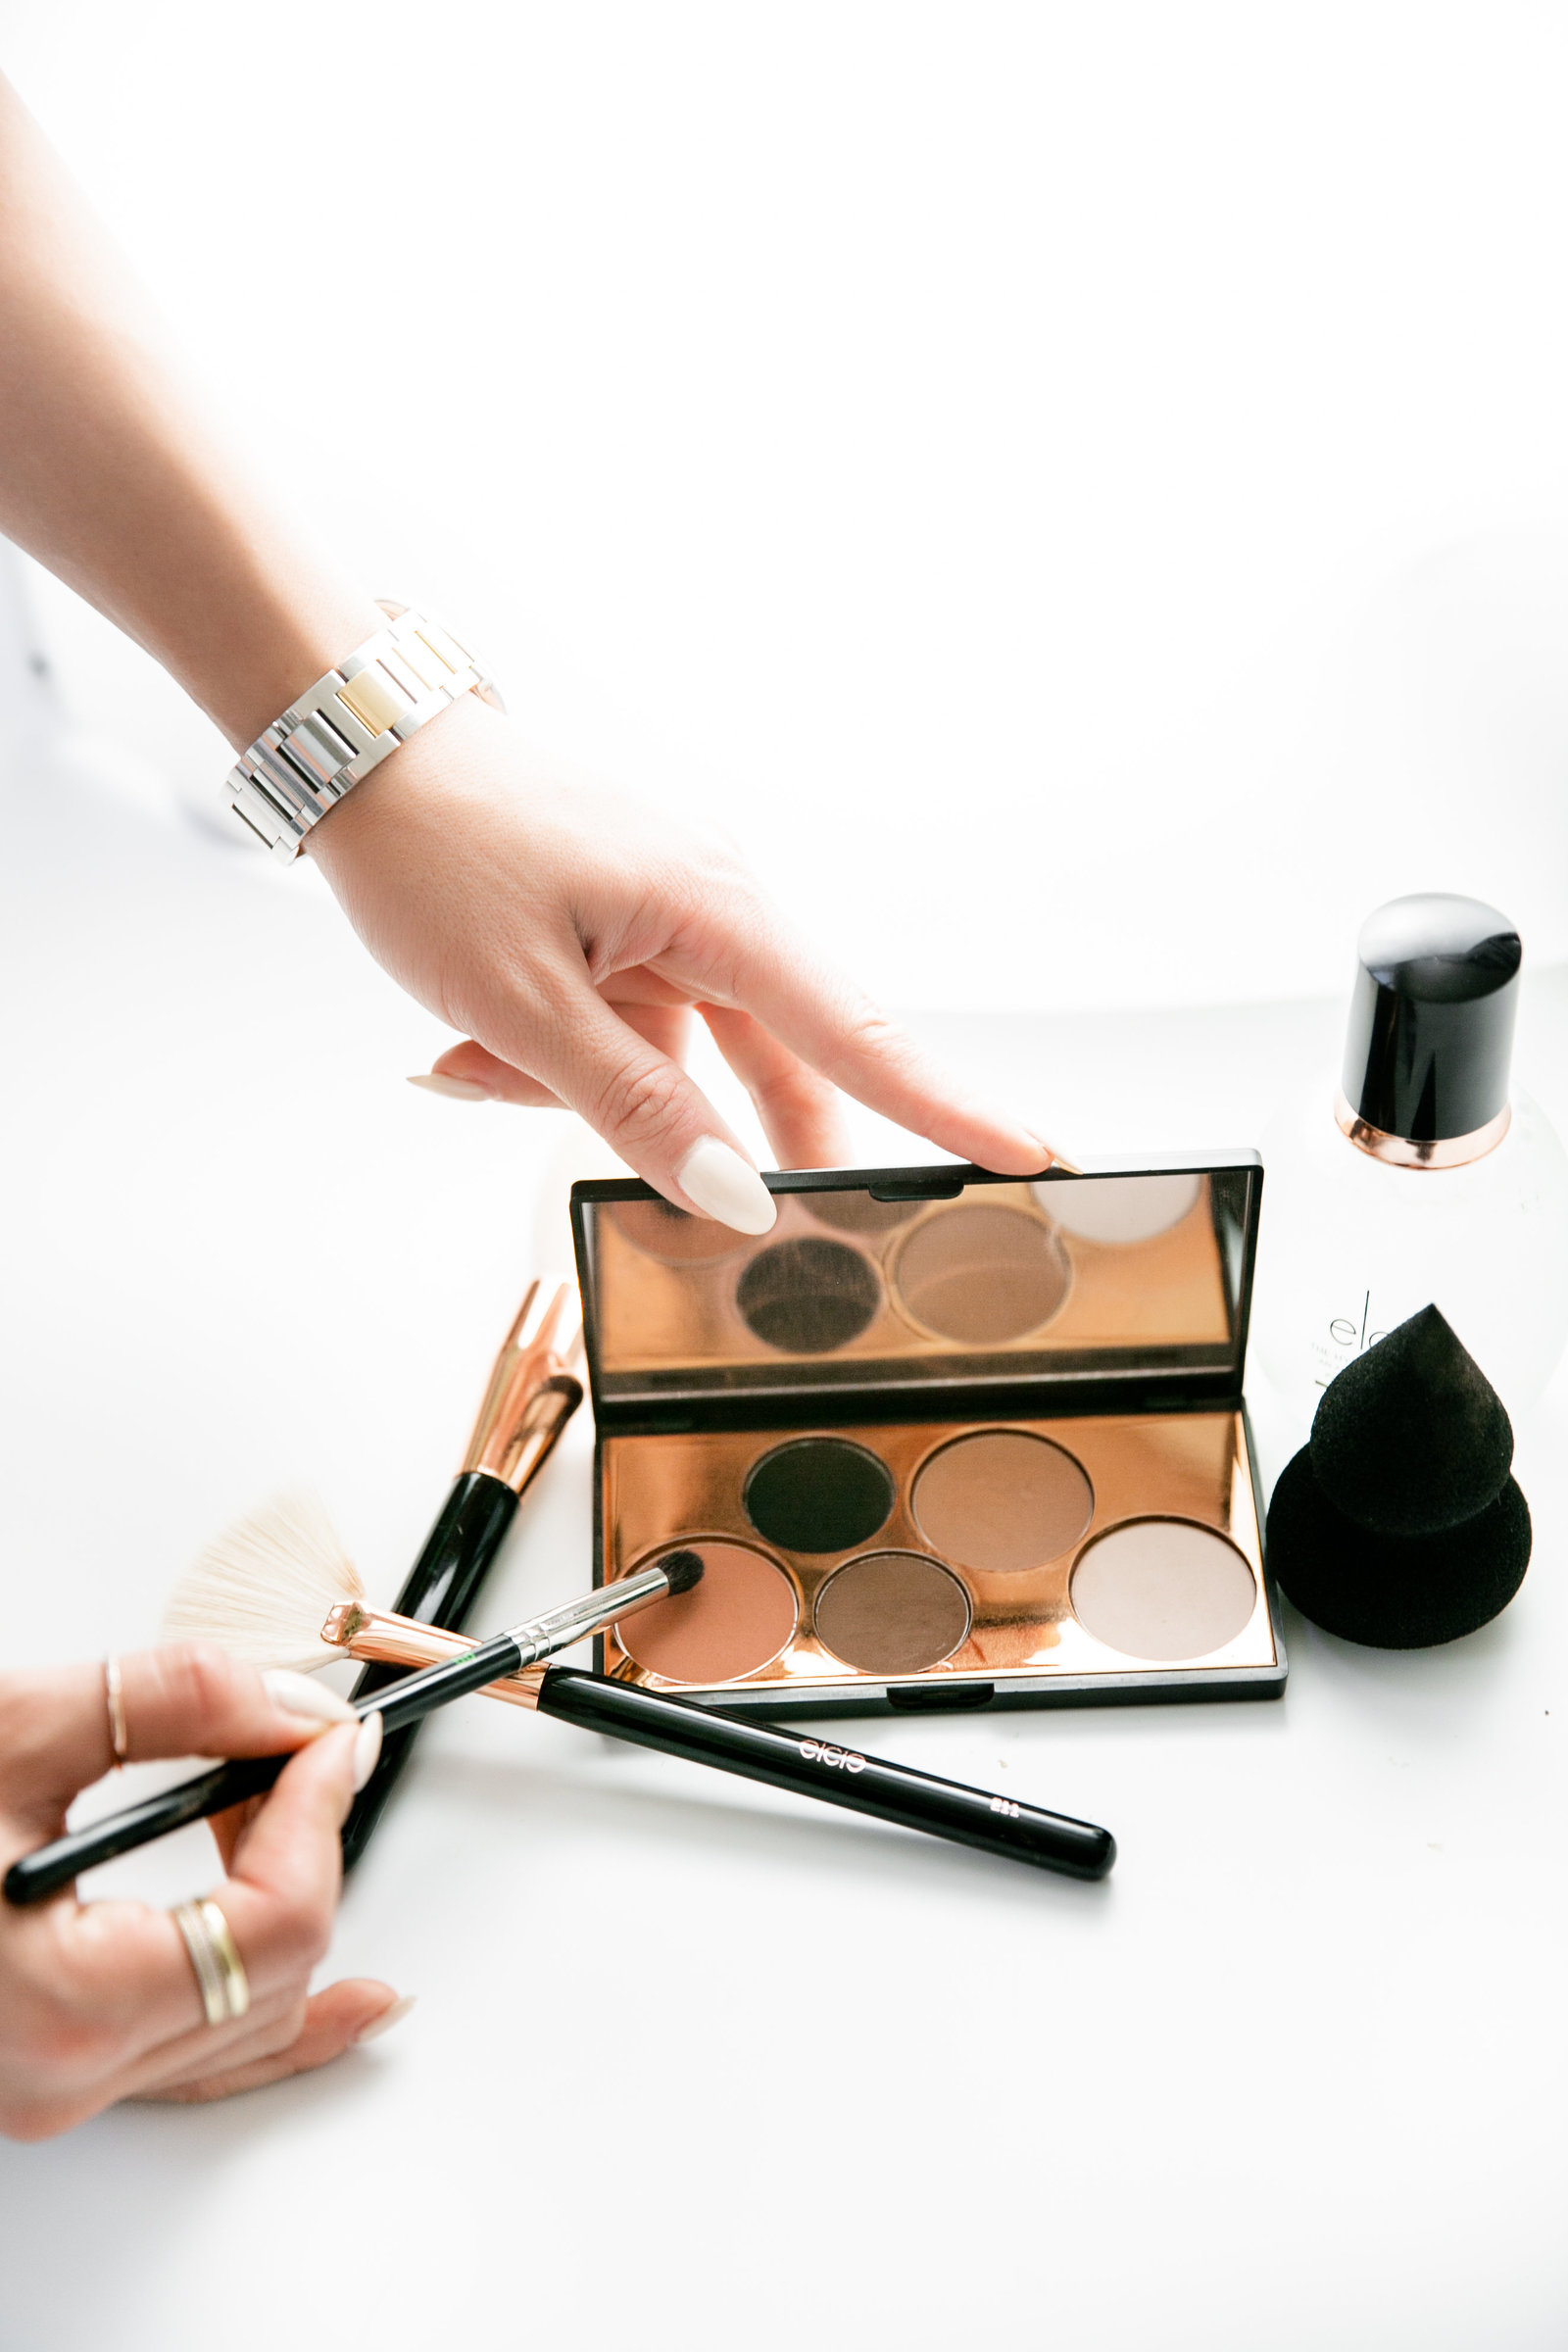 Karlie Colleen Photography - The Daily Concealer -51